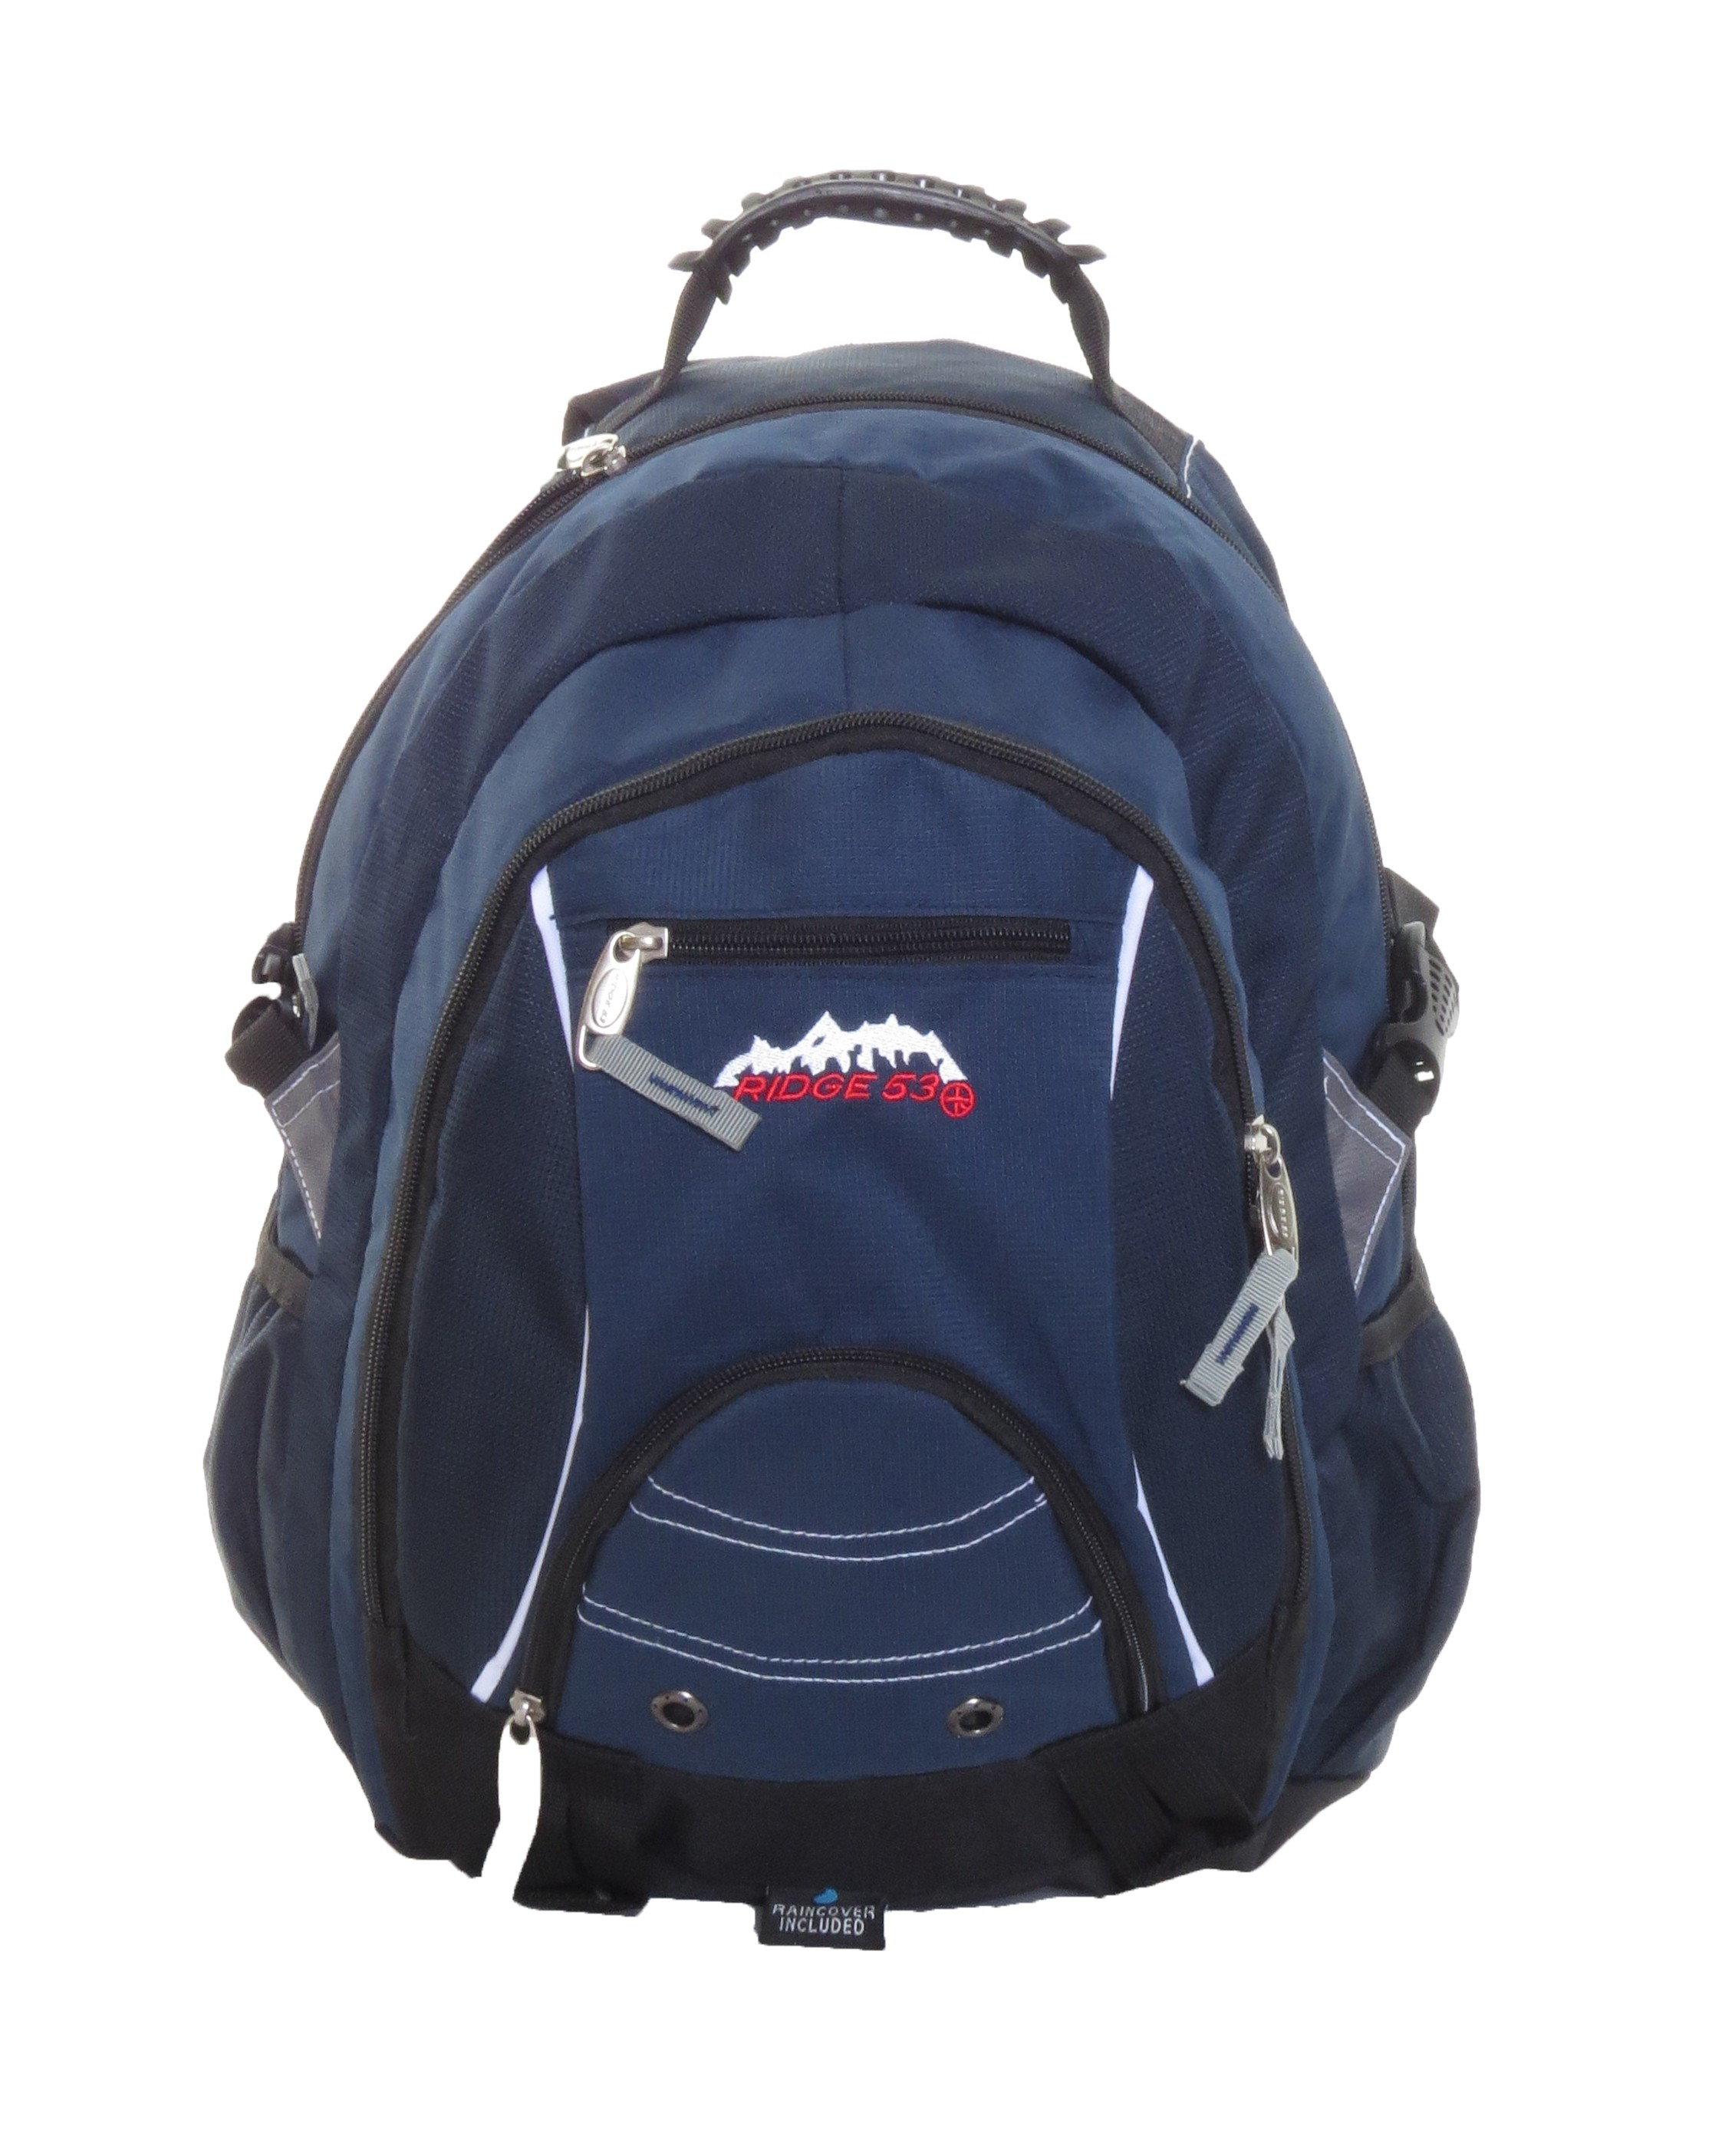 Ridge53 Bolton Navy School Bag